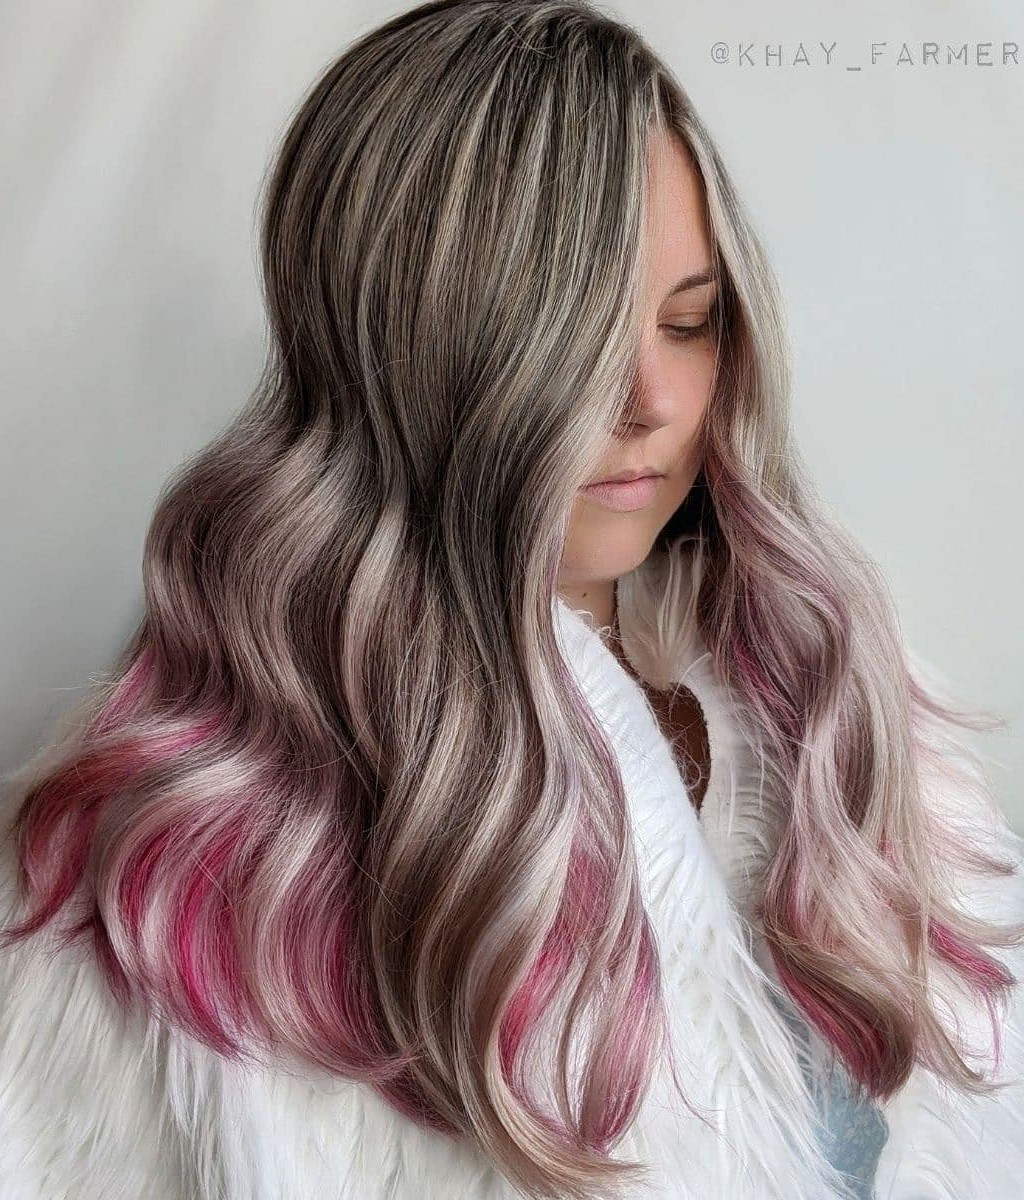 Blonde Highlights and Pink Bottom Layer